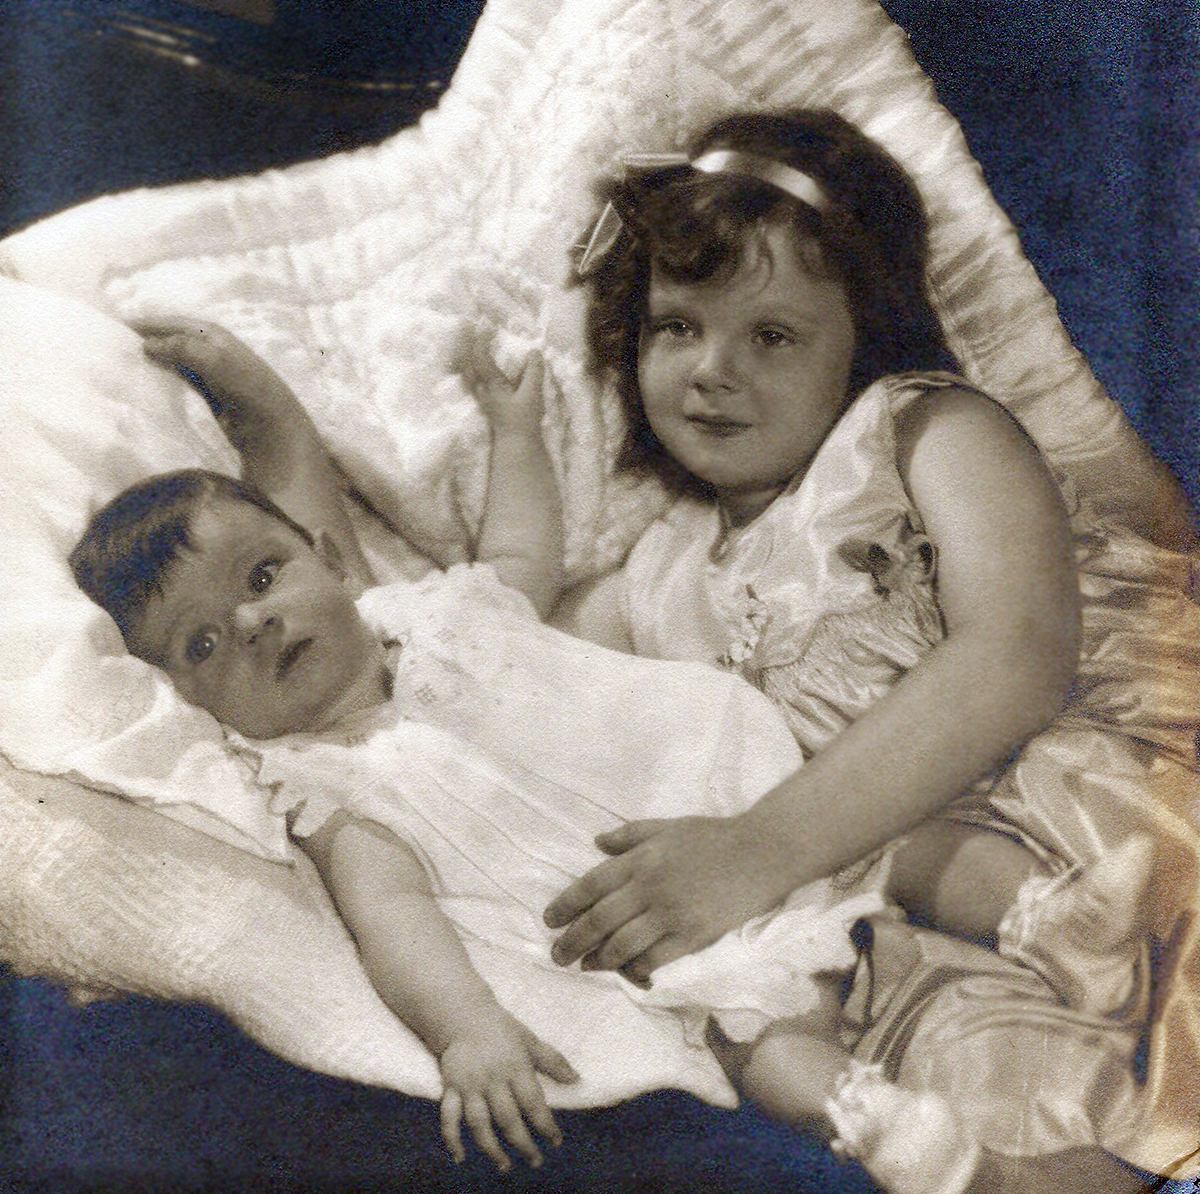 With sister Rebecca, 1932